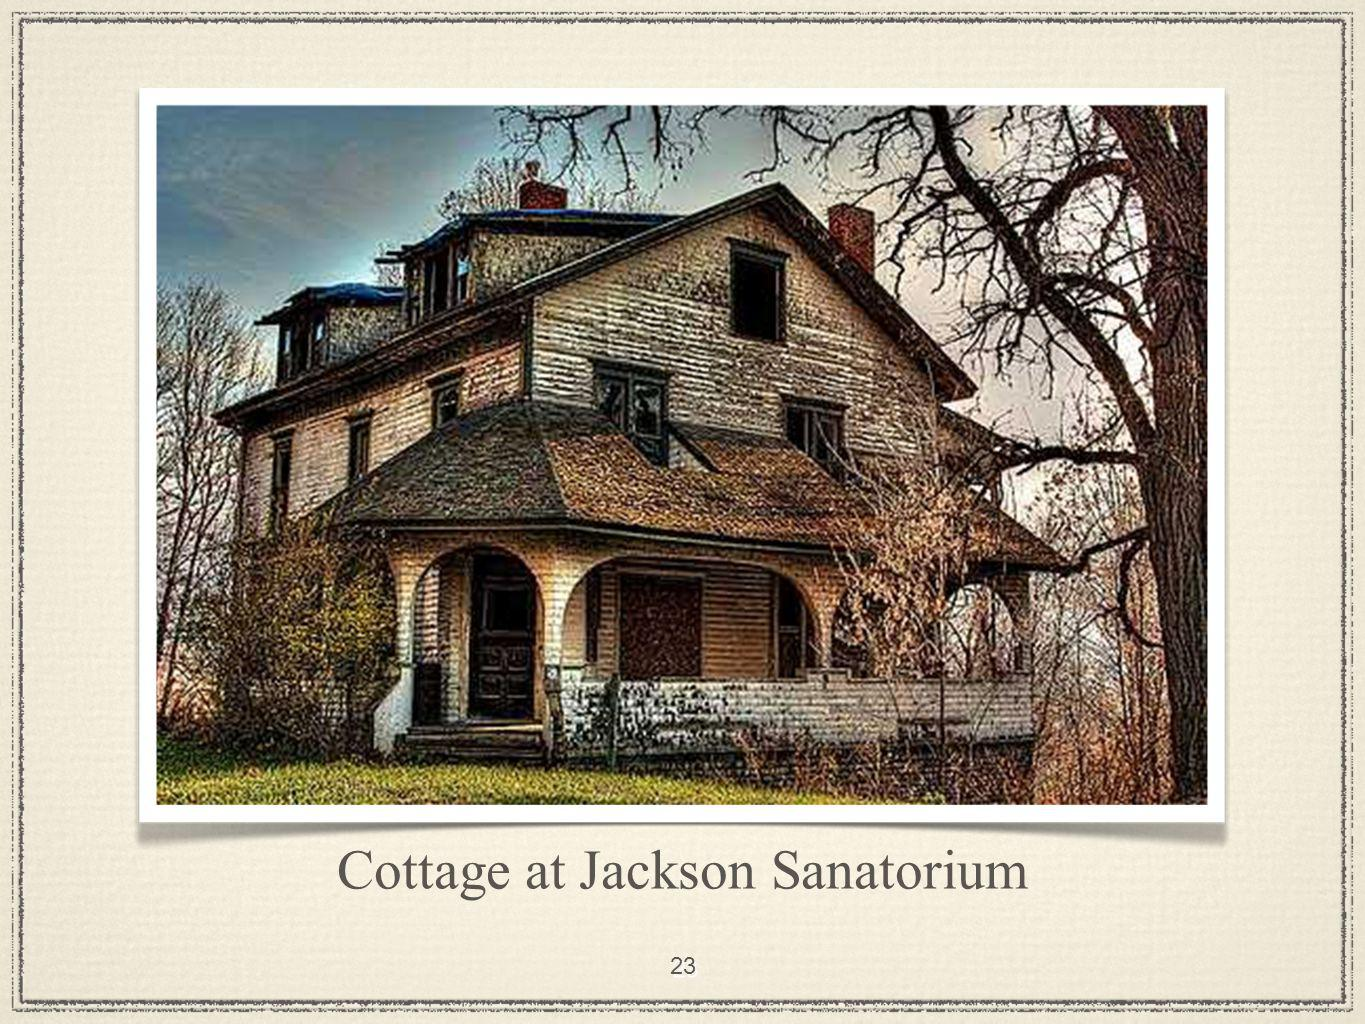 23 Cottage at Jackson Sanatorium